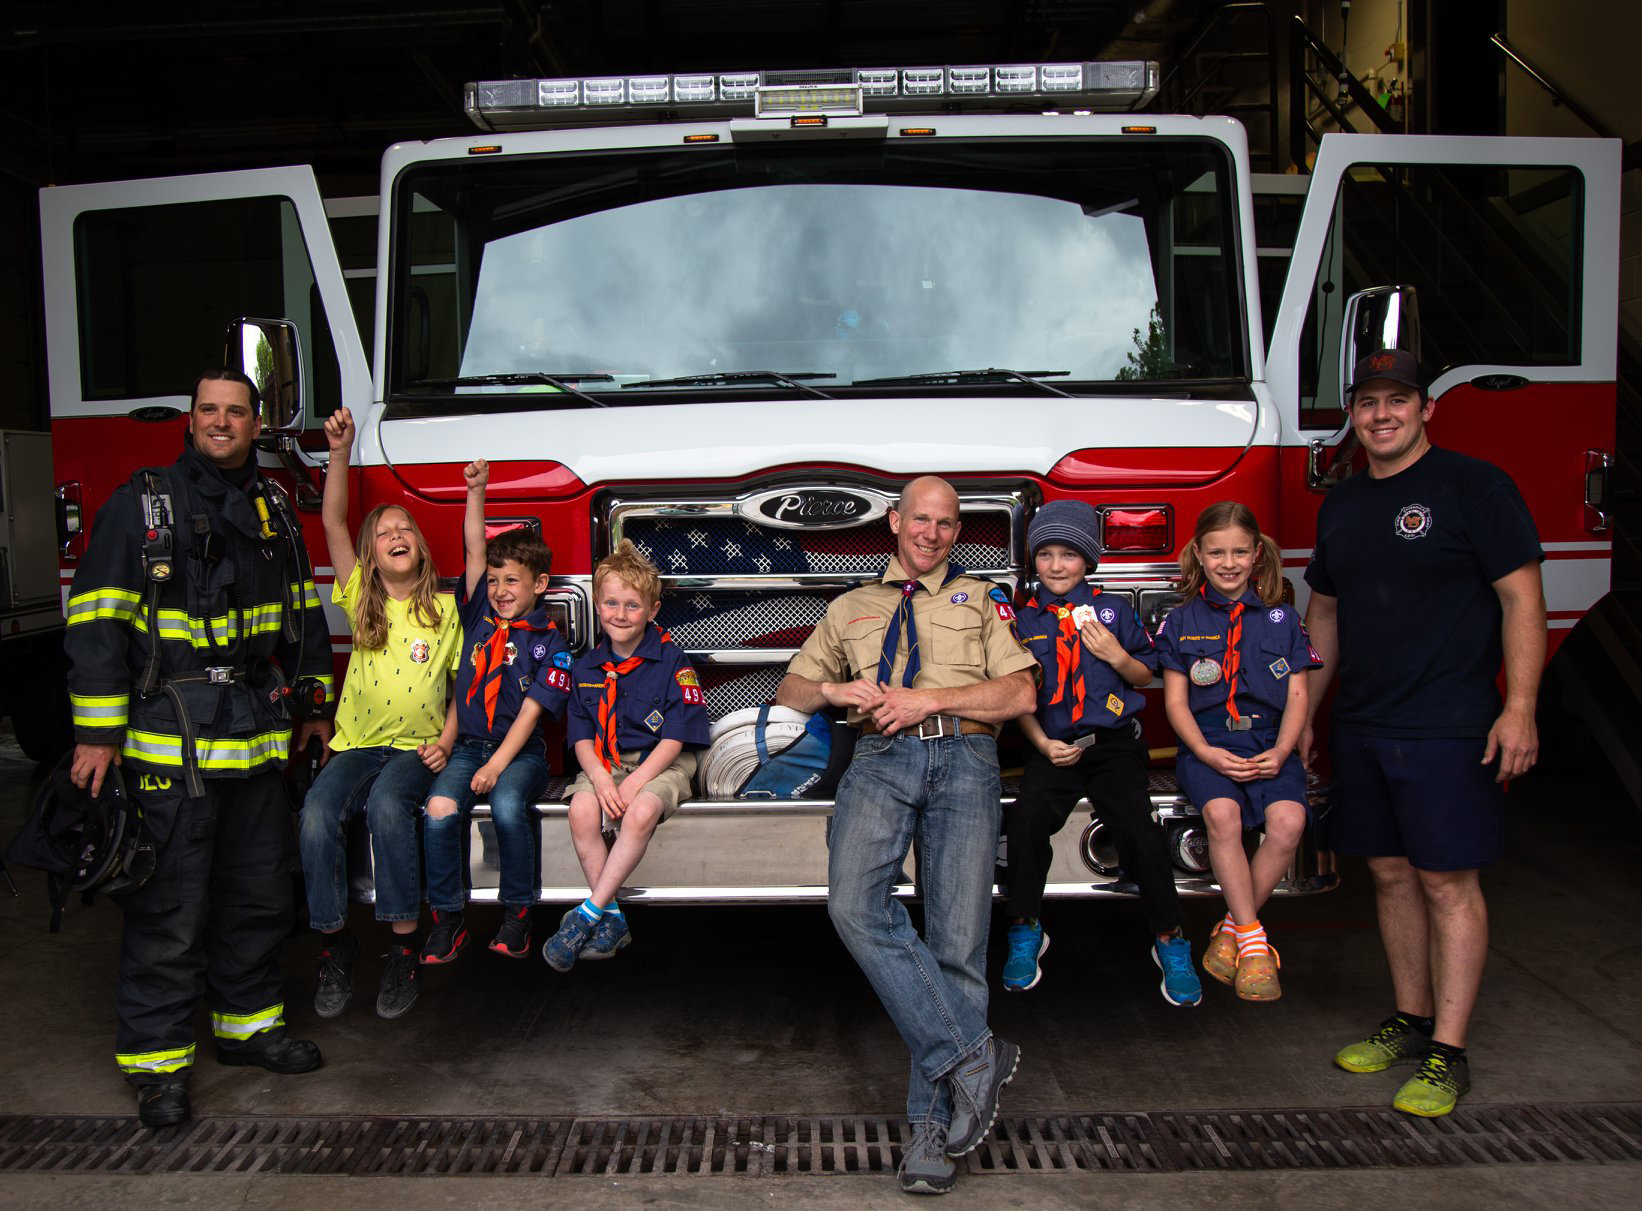 Photo Contest, Adult 1st place: Pack 4911 Tiger Den visiting the City of Missoula Fire Department. Eric Henderson, Pack 4911, Missoula. — in Missoula, MT.